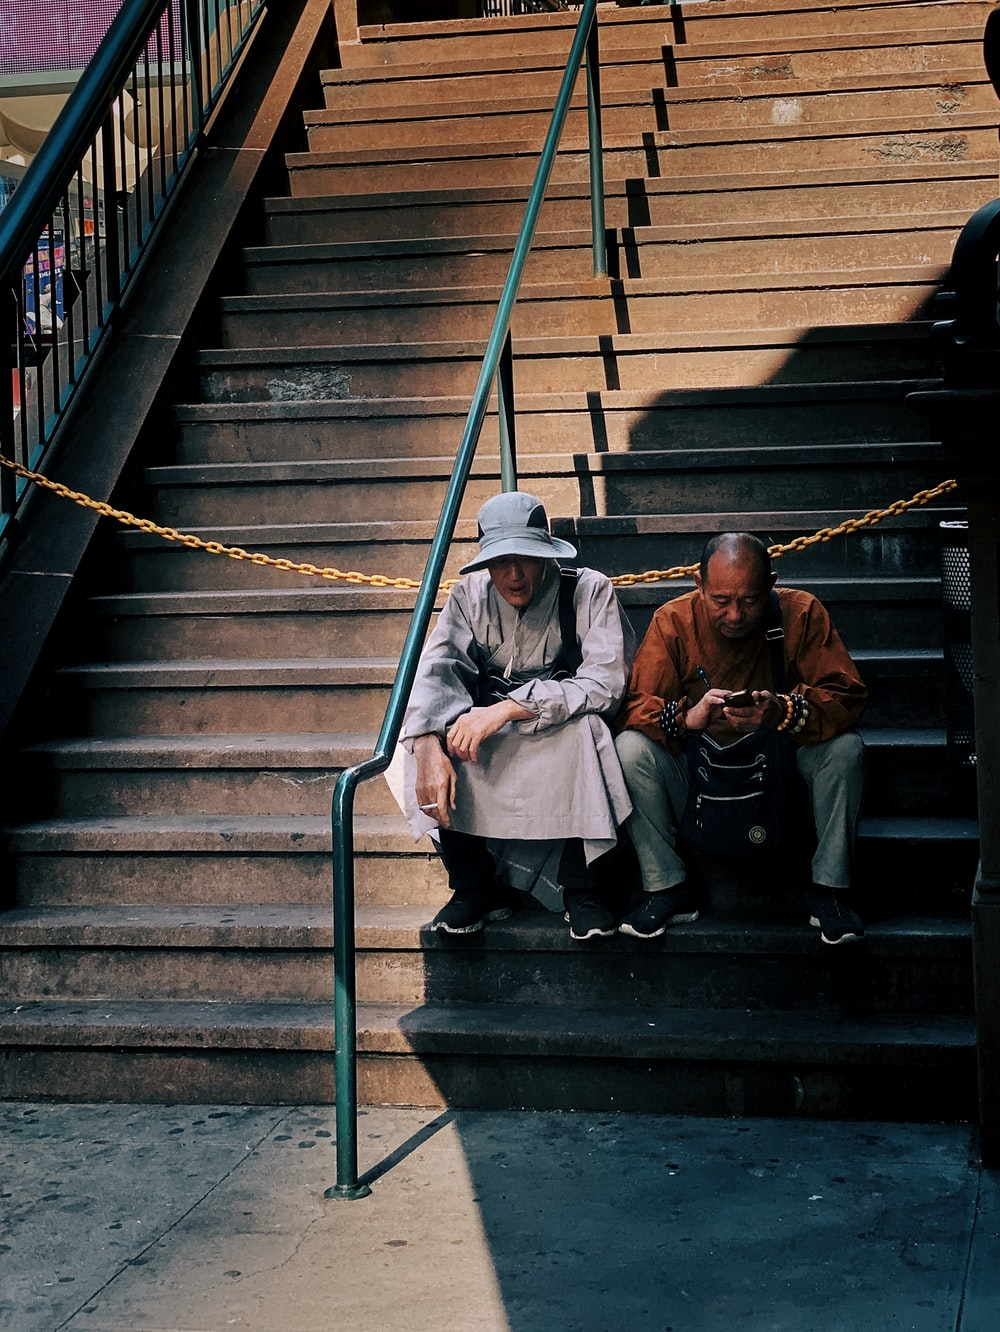 two men sitting on concrete stairs